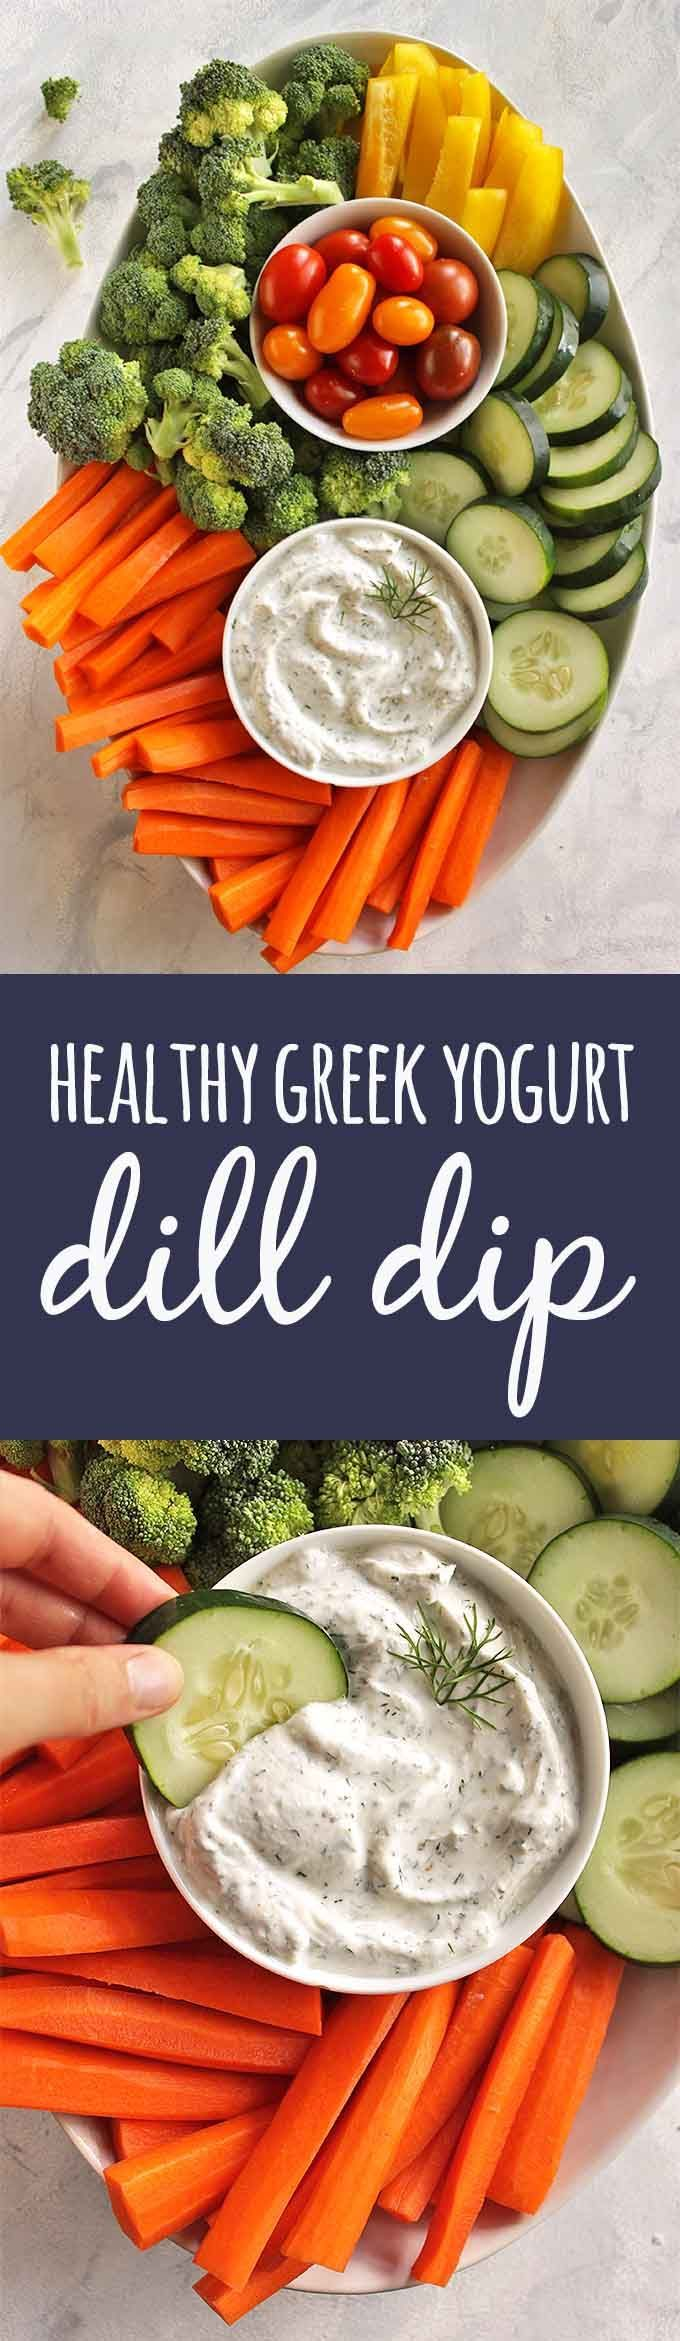 Healthy Greek Yogurt Dill Dip - Easy and tasty dill dip recipe that has simple, clean ingredients. Perfect for veggie platters & packed lunches. Only requires 5 minutes to make + 7 simple ingredients. Fat free, packed with protein and probiotics. One of o